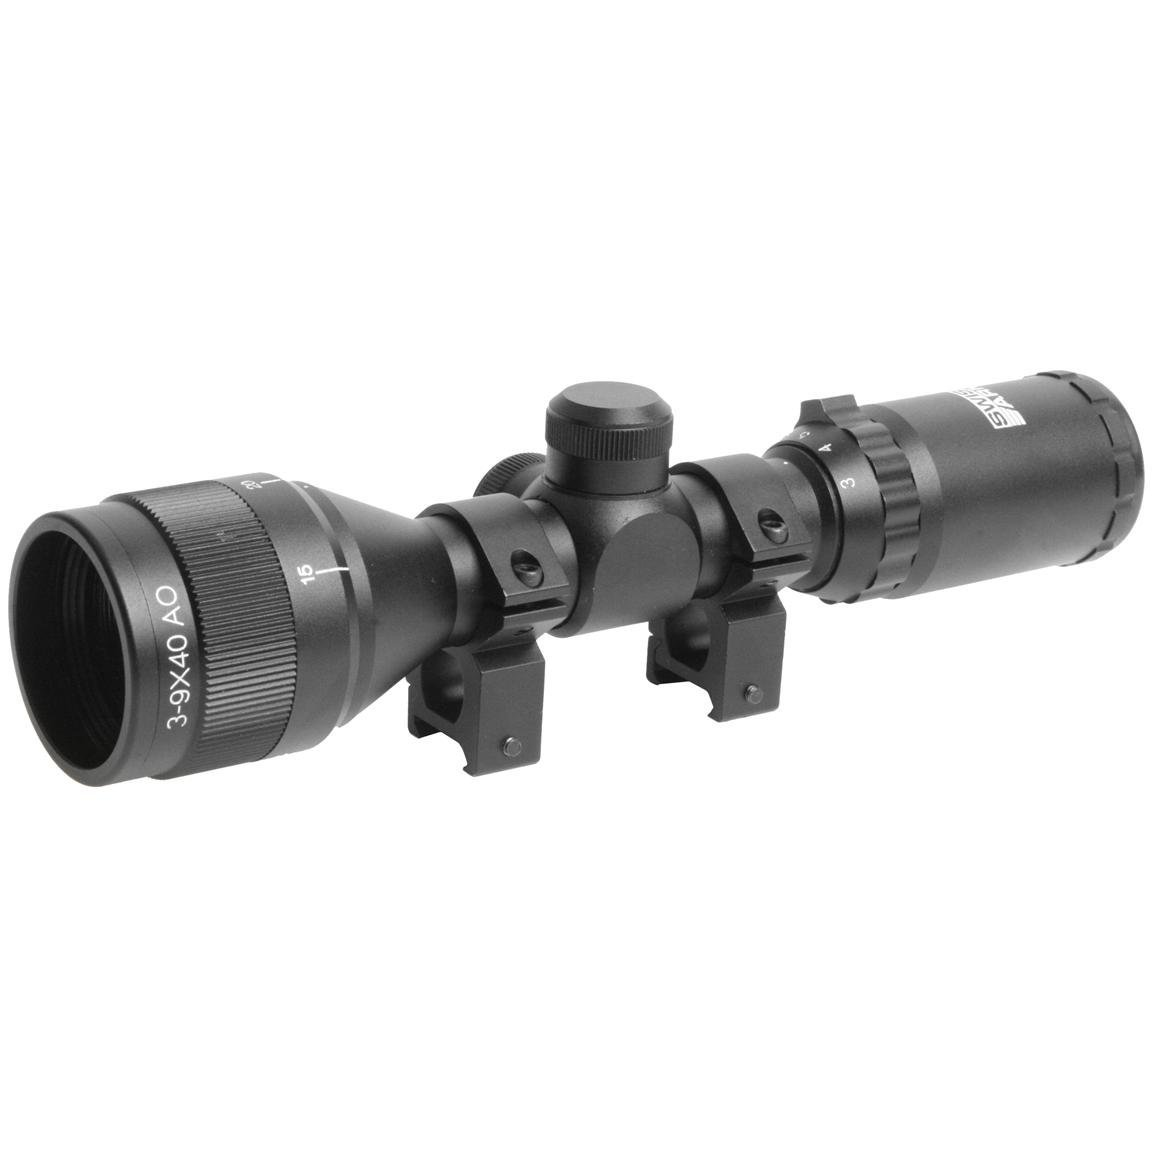 SWISS ARMS 3-9 X 40 WATERPROOF COMPACT SCOPE BLACK ZOOM RIFLE AIRSOFT